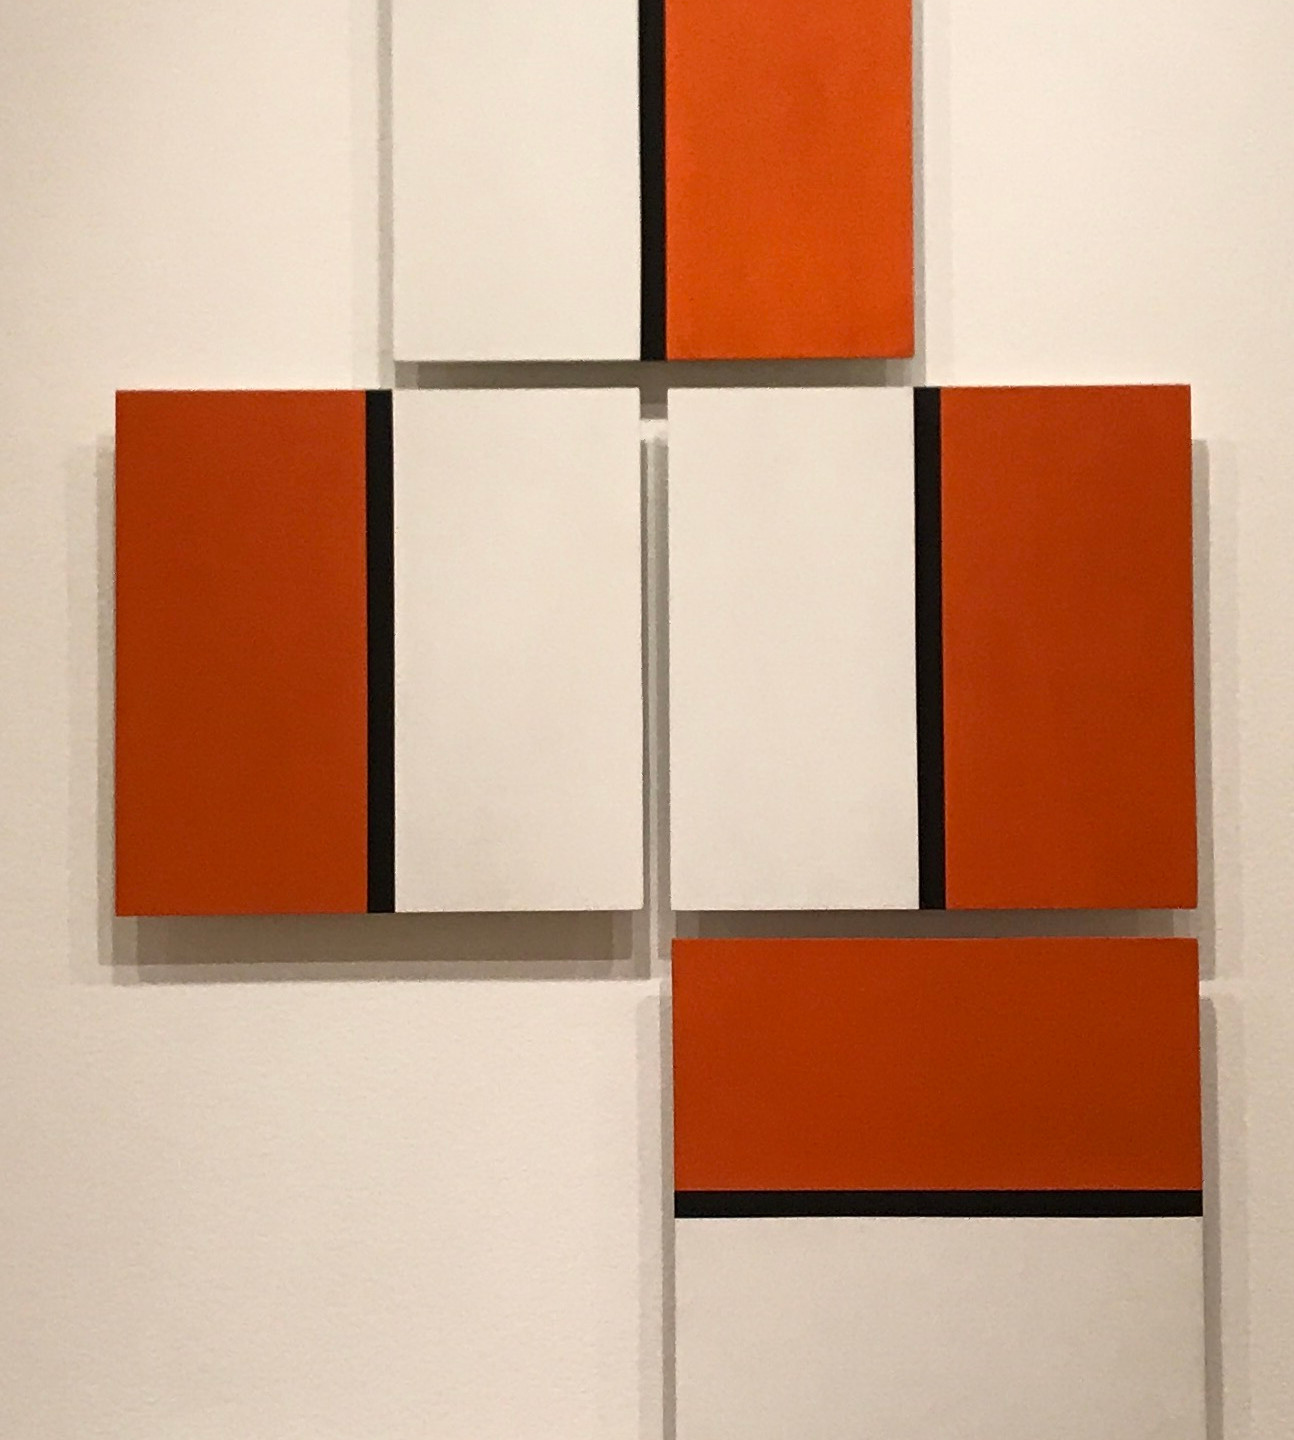 Lygia Pape, Orange (Laranja) (1955), oil and tempera on board, 15 5/8 x 15 5/8 x 1 1/2 in.